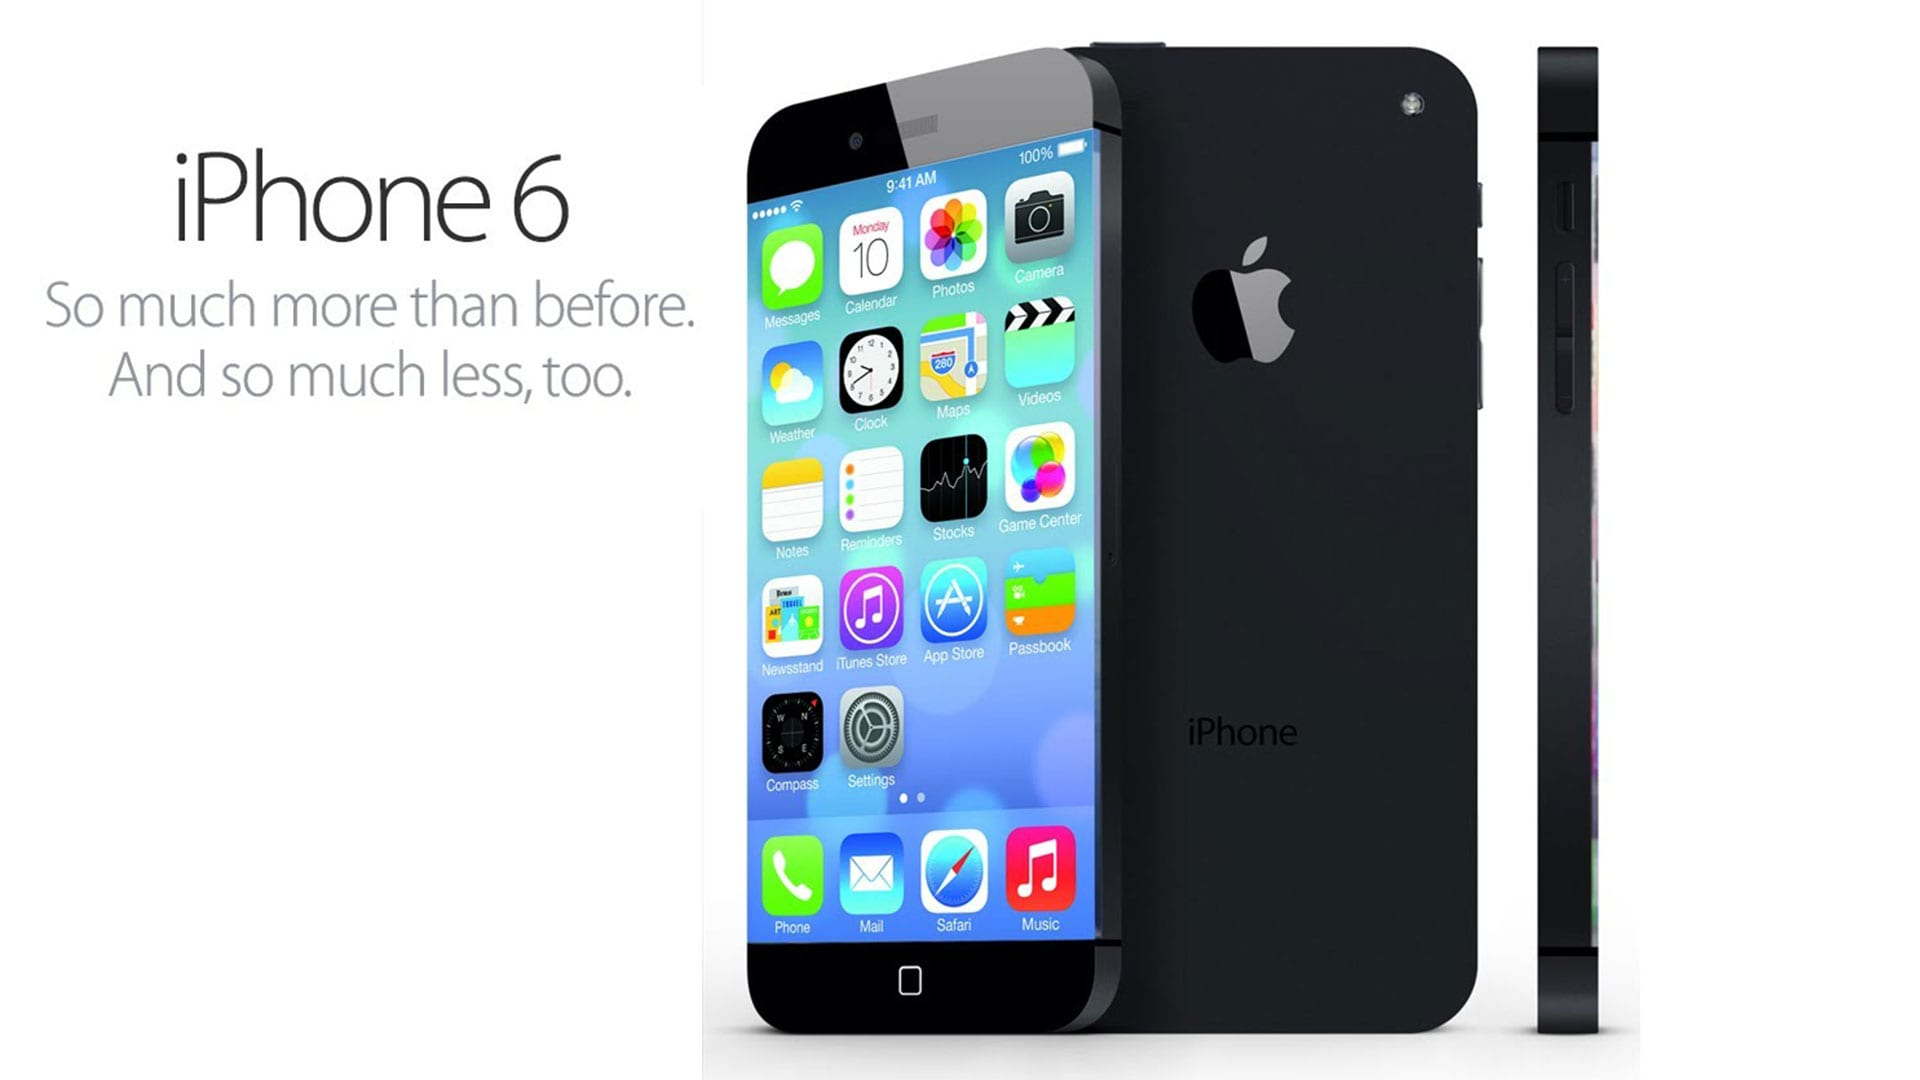 10 Differences Between iPhone 5s And iPhone 6